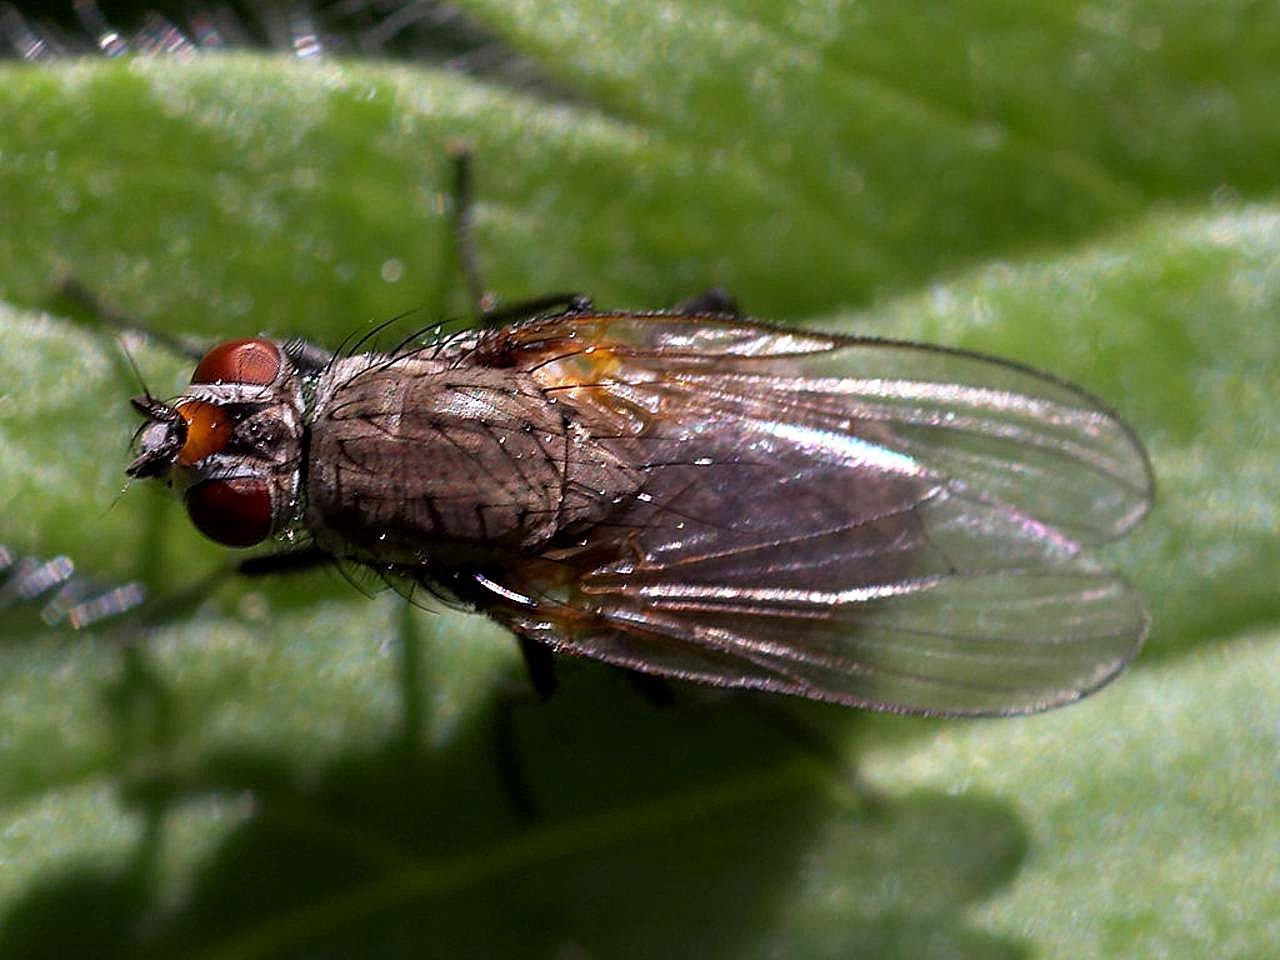 File:Flies fly wings bugs insects.jpg - Wikimedia Commons